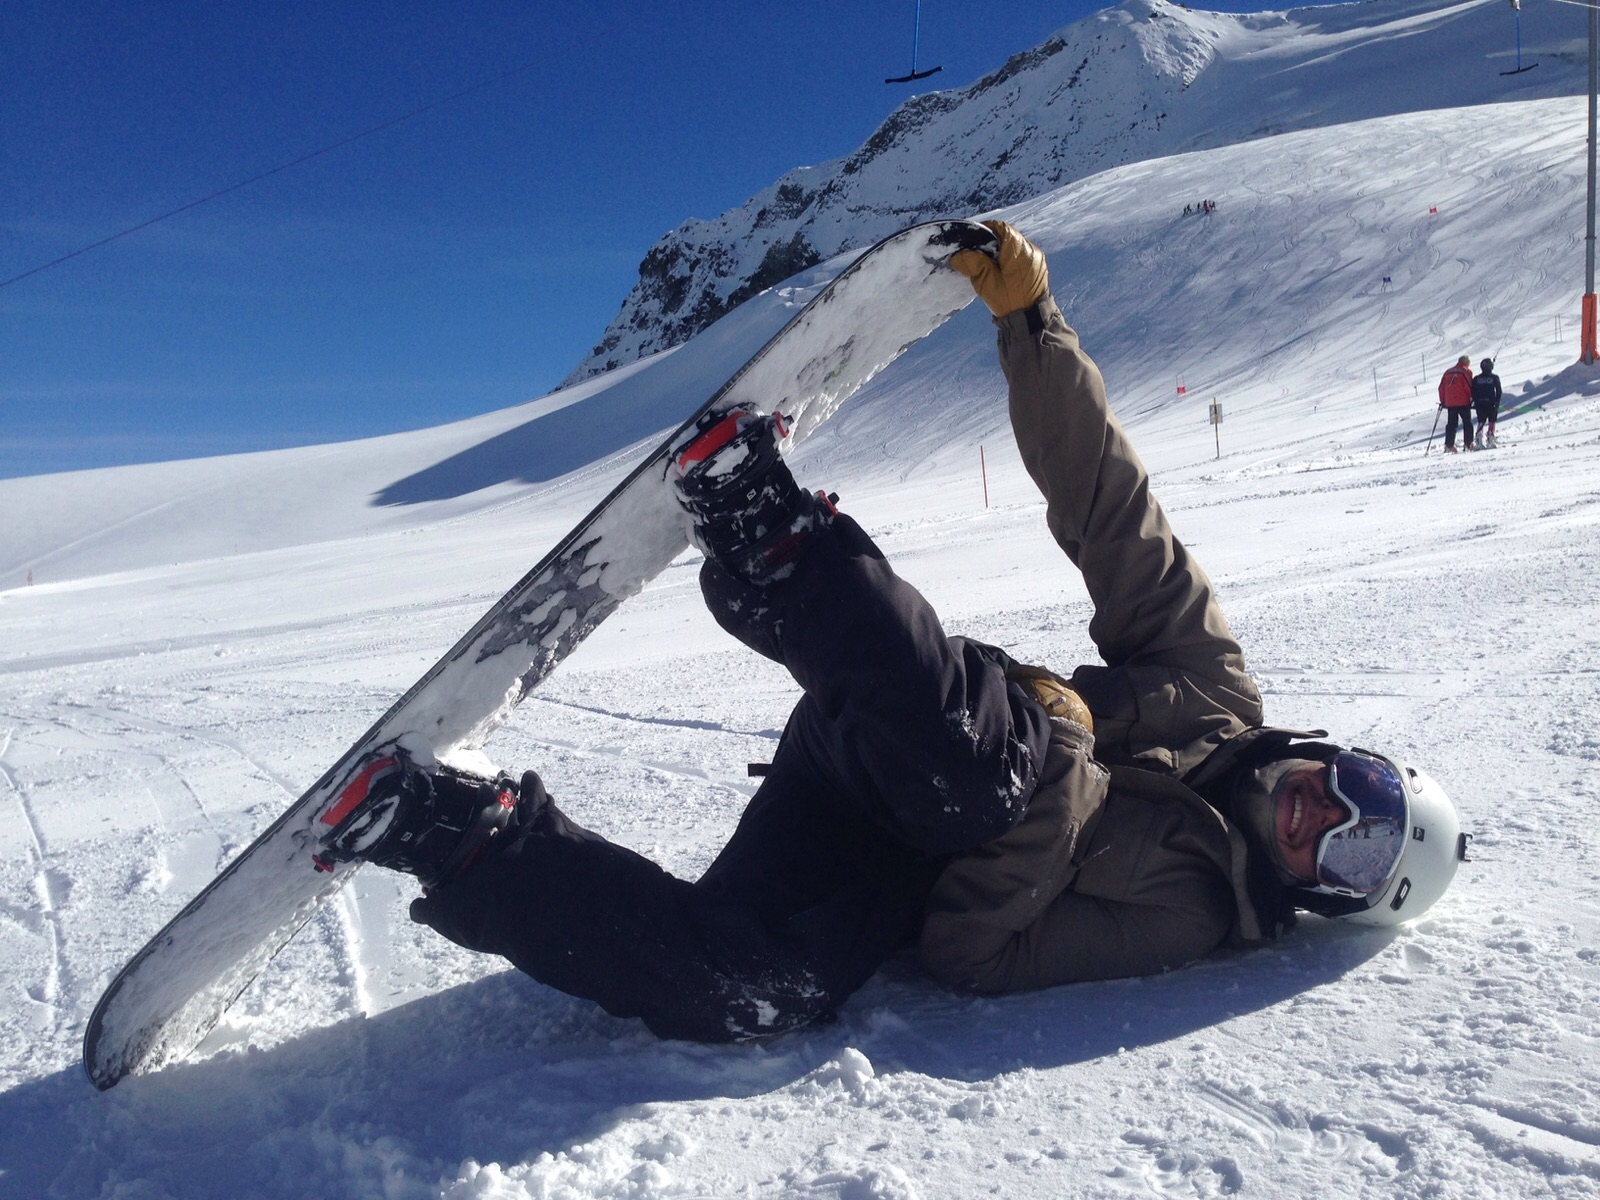 snowboarding is better than skiing